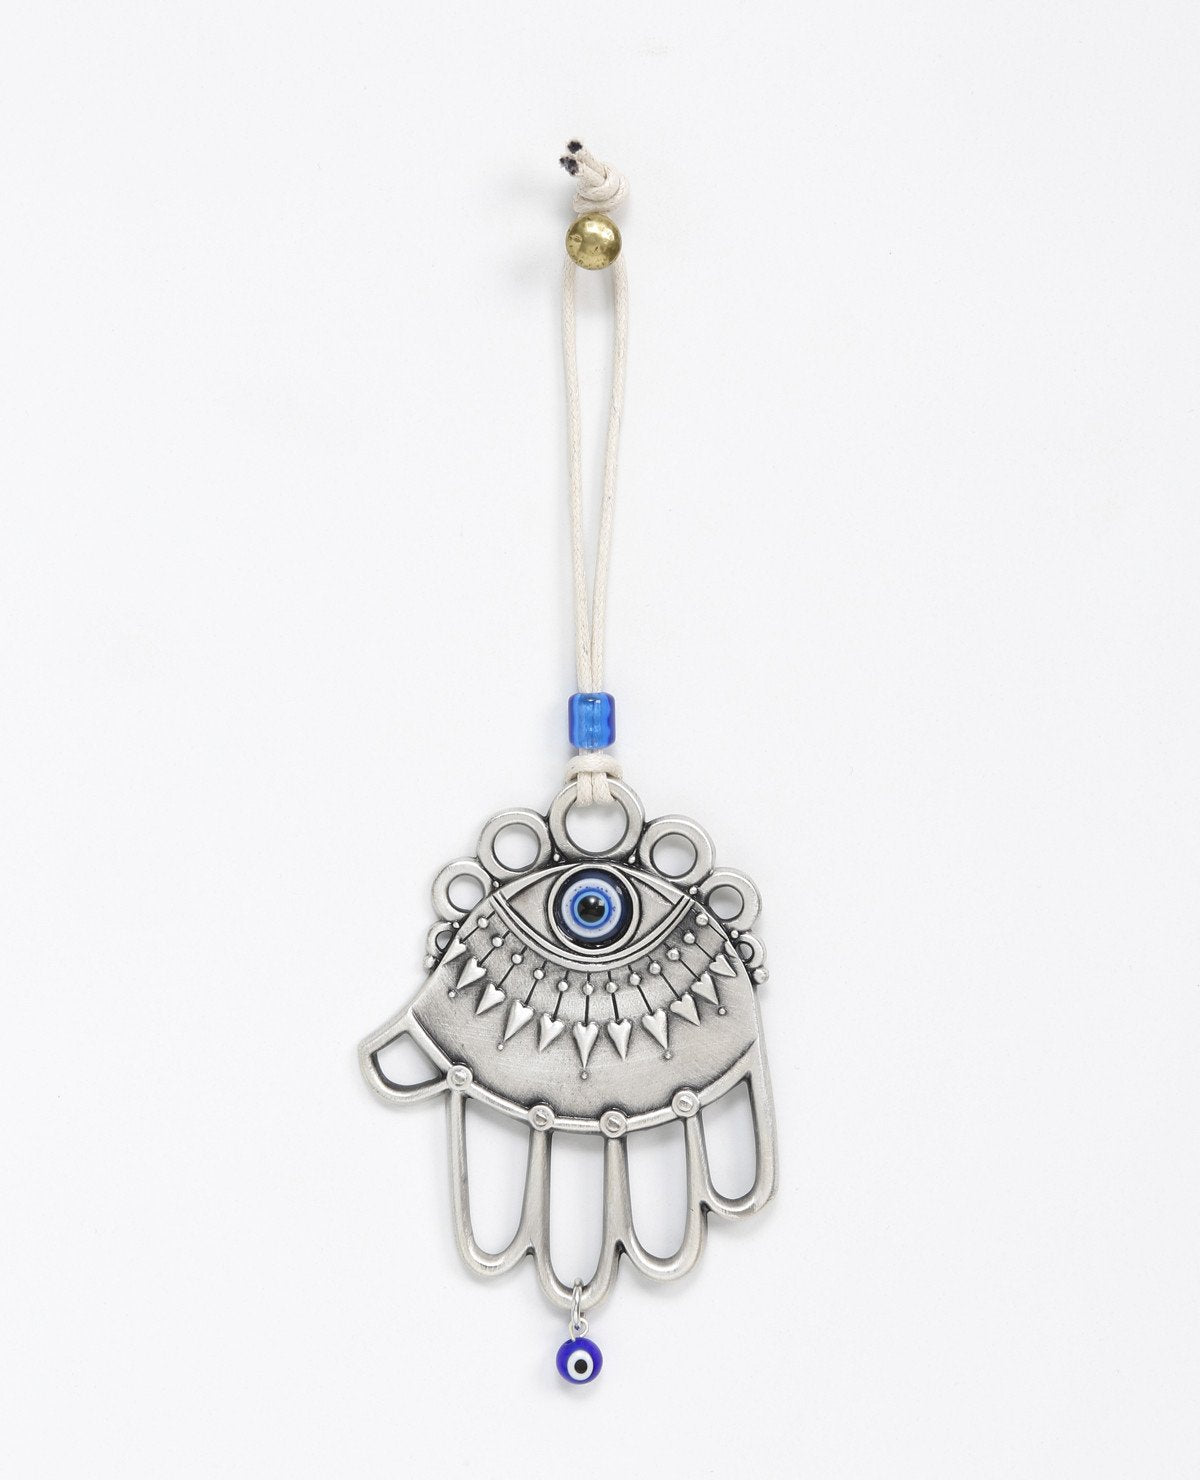 A one of a kind hanging Hamsa ornament. It is designed with a combination of different styles, some of which are hollow, while others are solid decorated surfaces. Embedded at the top of the Hamsa is a large blue eye, decorated by a lower eyelash in the shape of heart arrows. The fingers of the Hamsa are hollow and at their bottom hangs a small blue eye. The ornament is coated in sterling silver and comes with a faux leather string for hanging, decorated by a blue bead.  The blue eye is considered a charm a